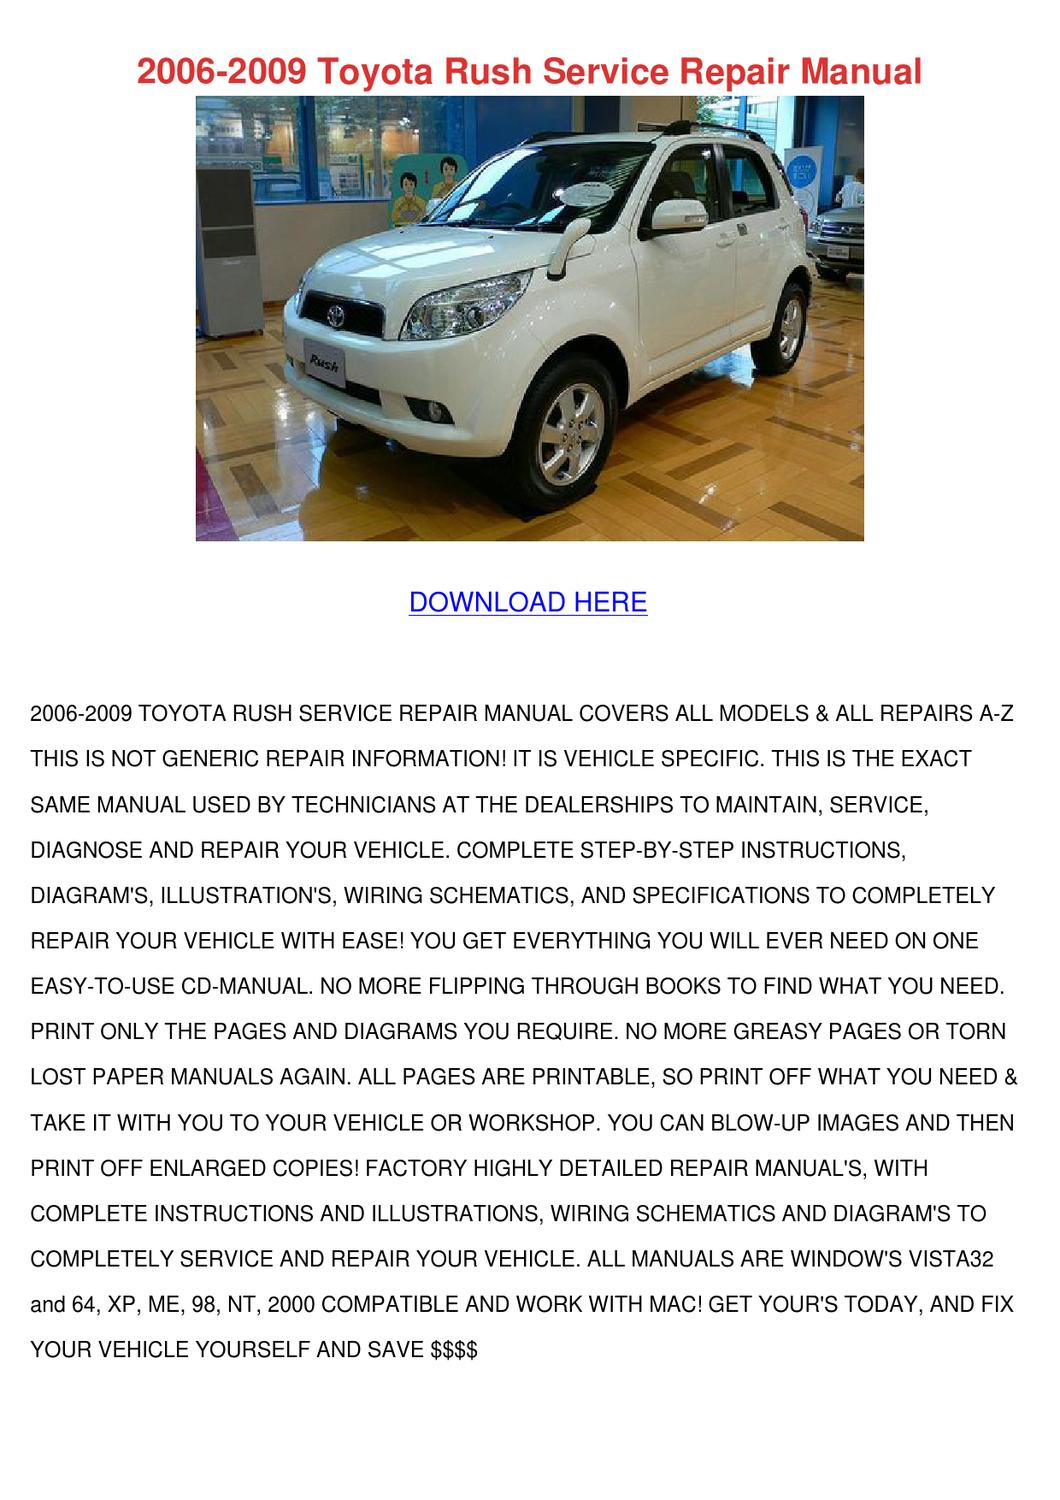 2006 2009 toyota rush service repair manual by wan hoovler issuu rh issuu com Toyota Parts Toyota Wiring Diagrams